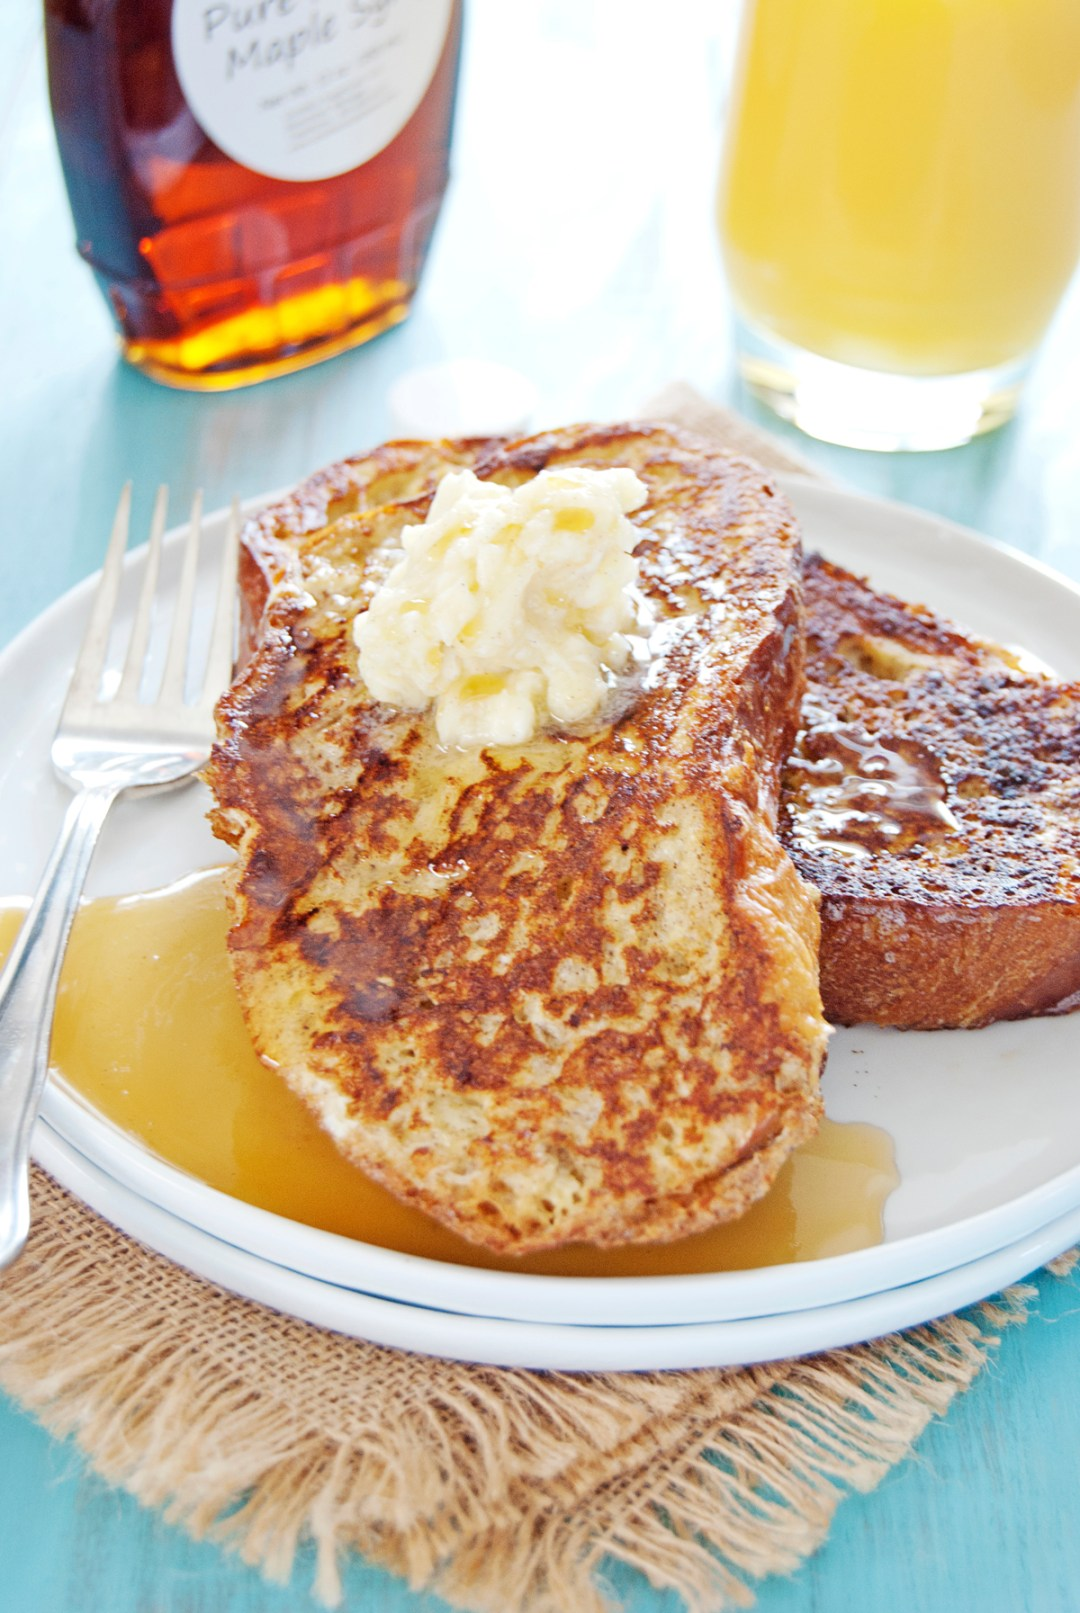 This cardamom spiced French toast is such a winner! It features a spice blend of cinnamon, cardamom, and nutmeg, and is topped with cardamom honey butter.